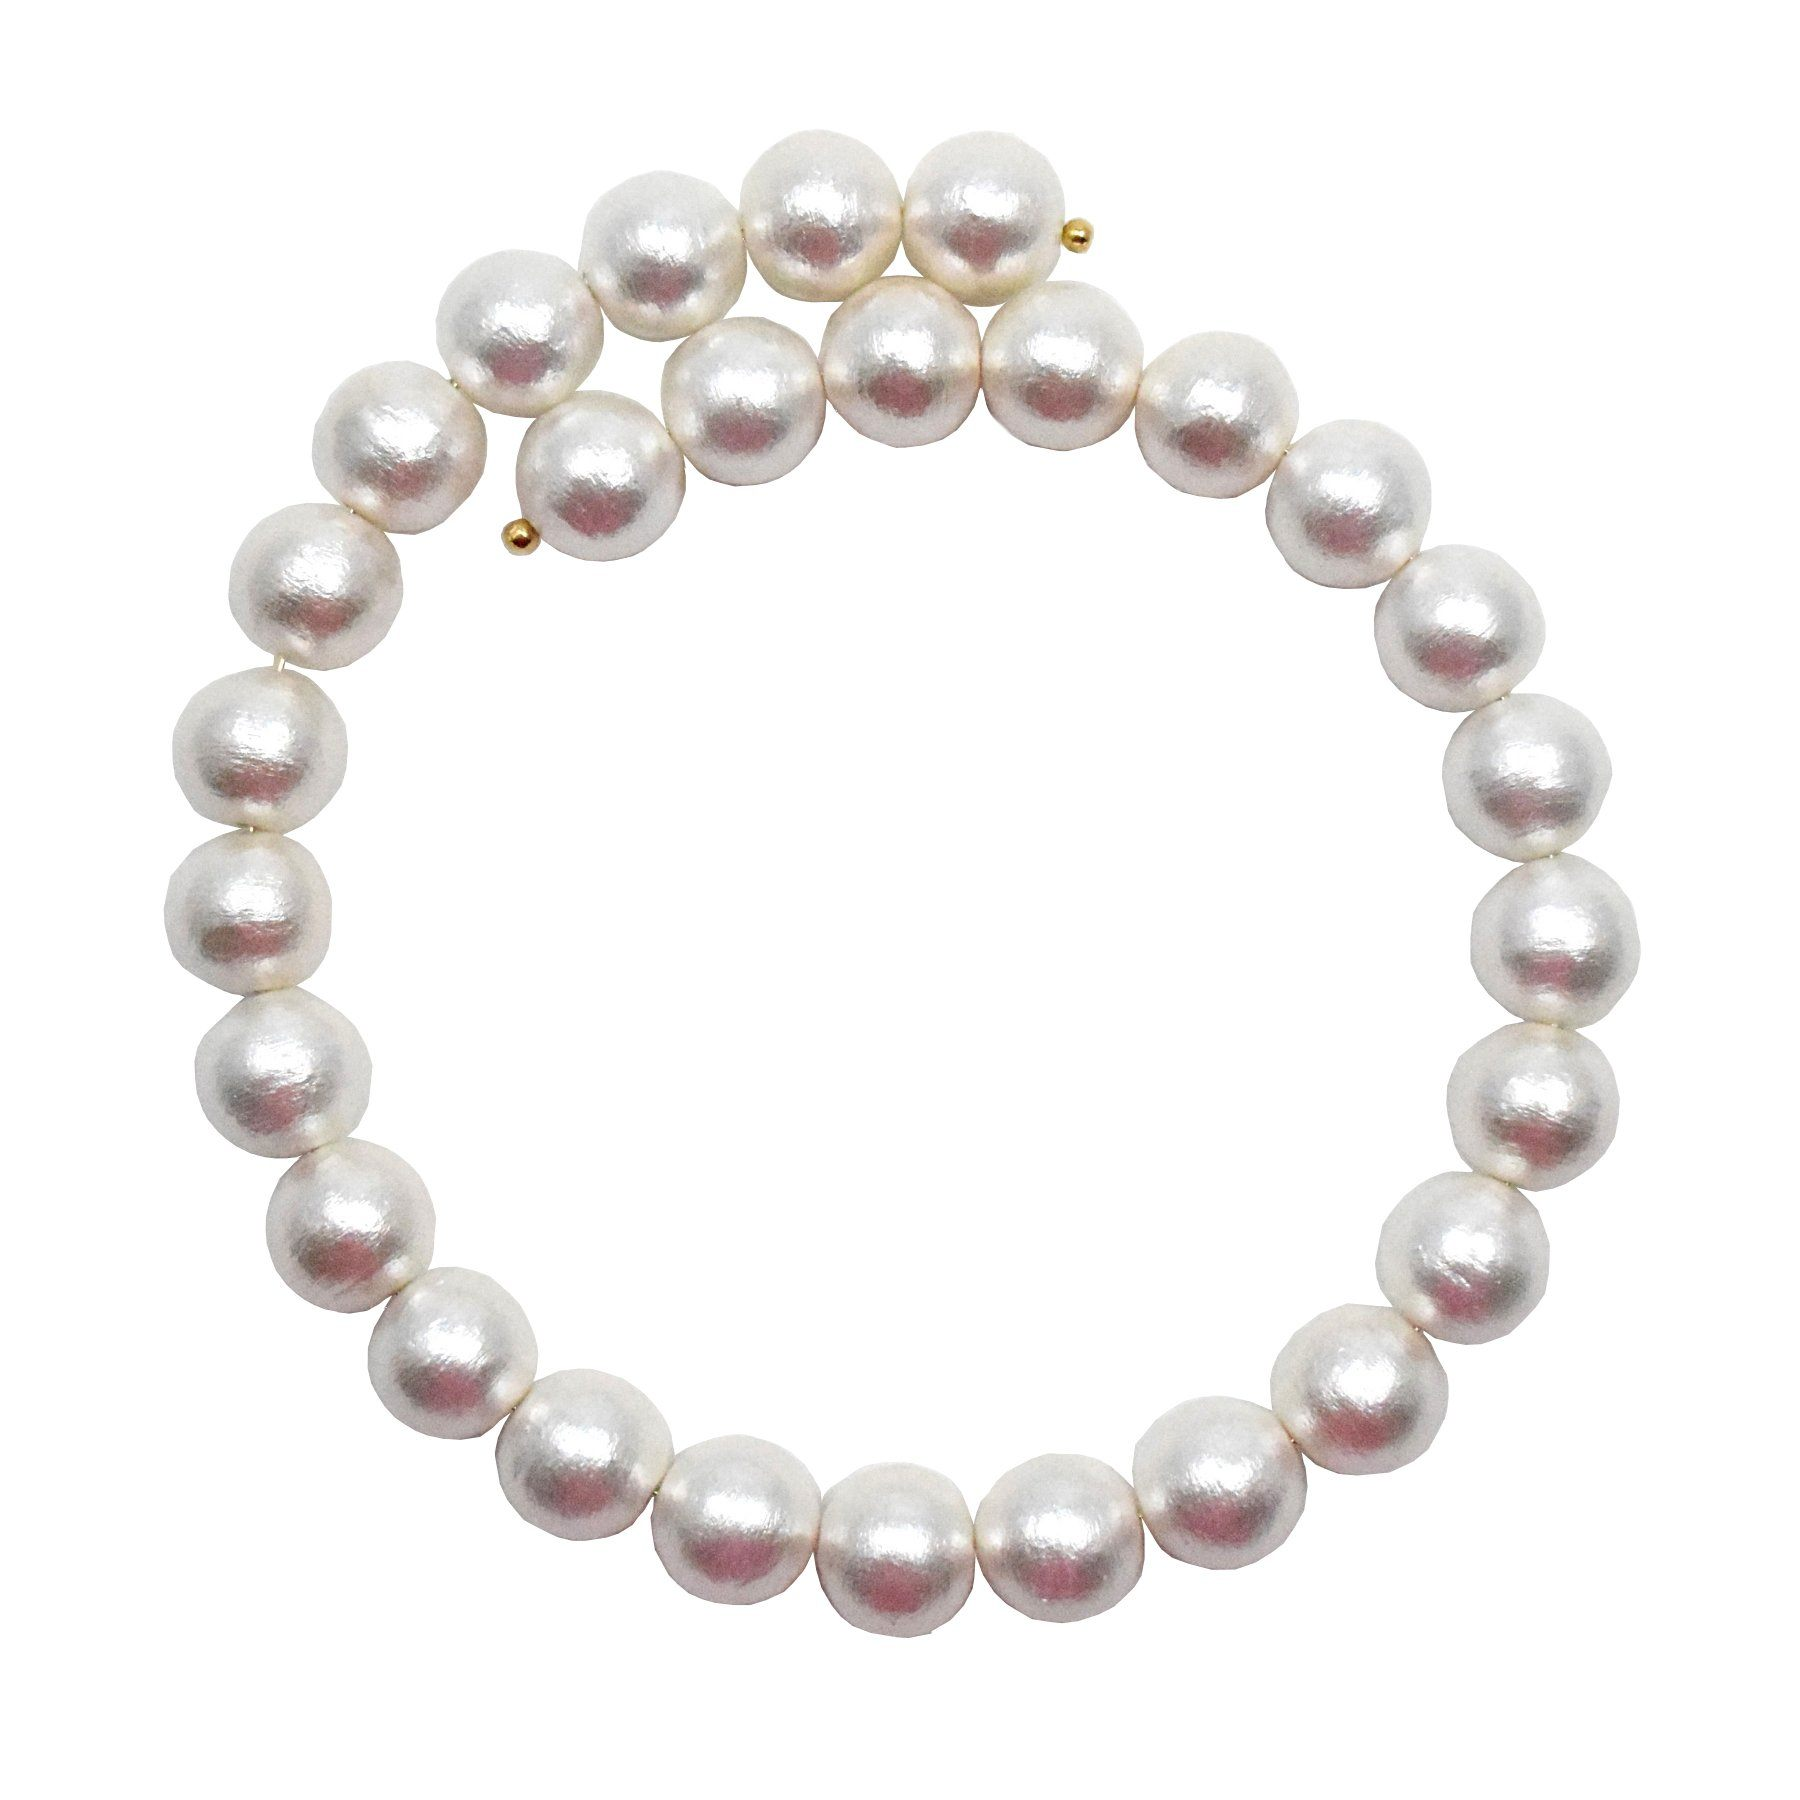 full view of pearl choker necklace with rows of oversized pearls and open adjustable back